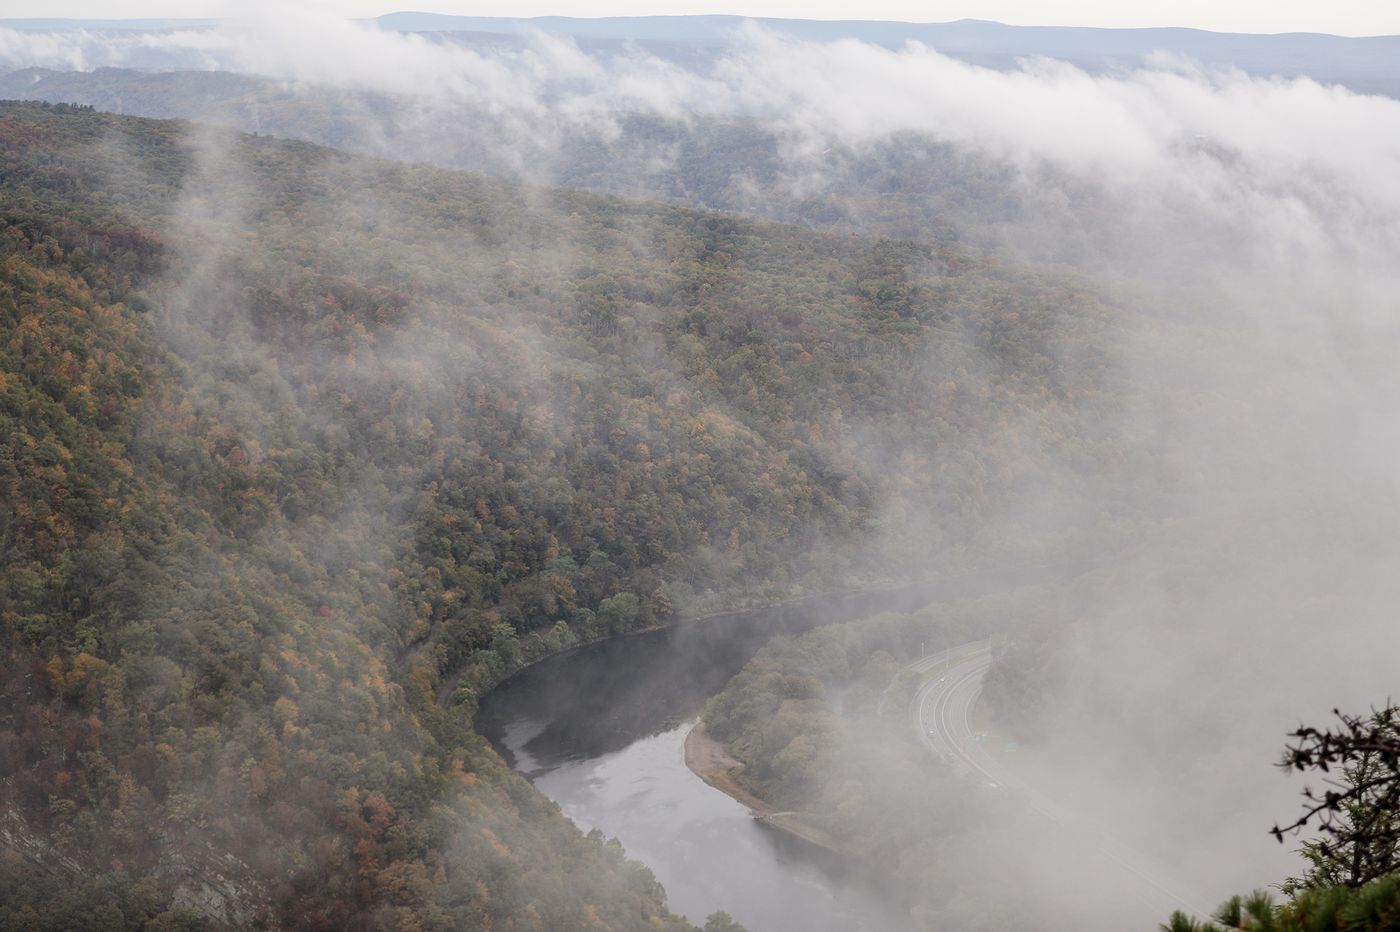 Take a tour through the Delaware Water Gap, the crown jewel that nearly disappeared